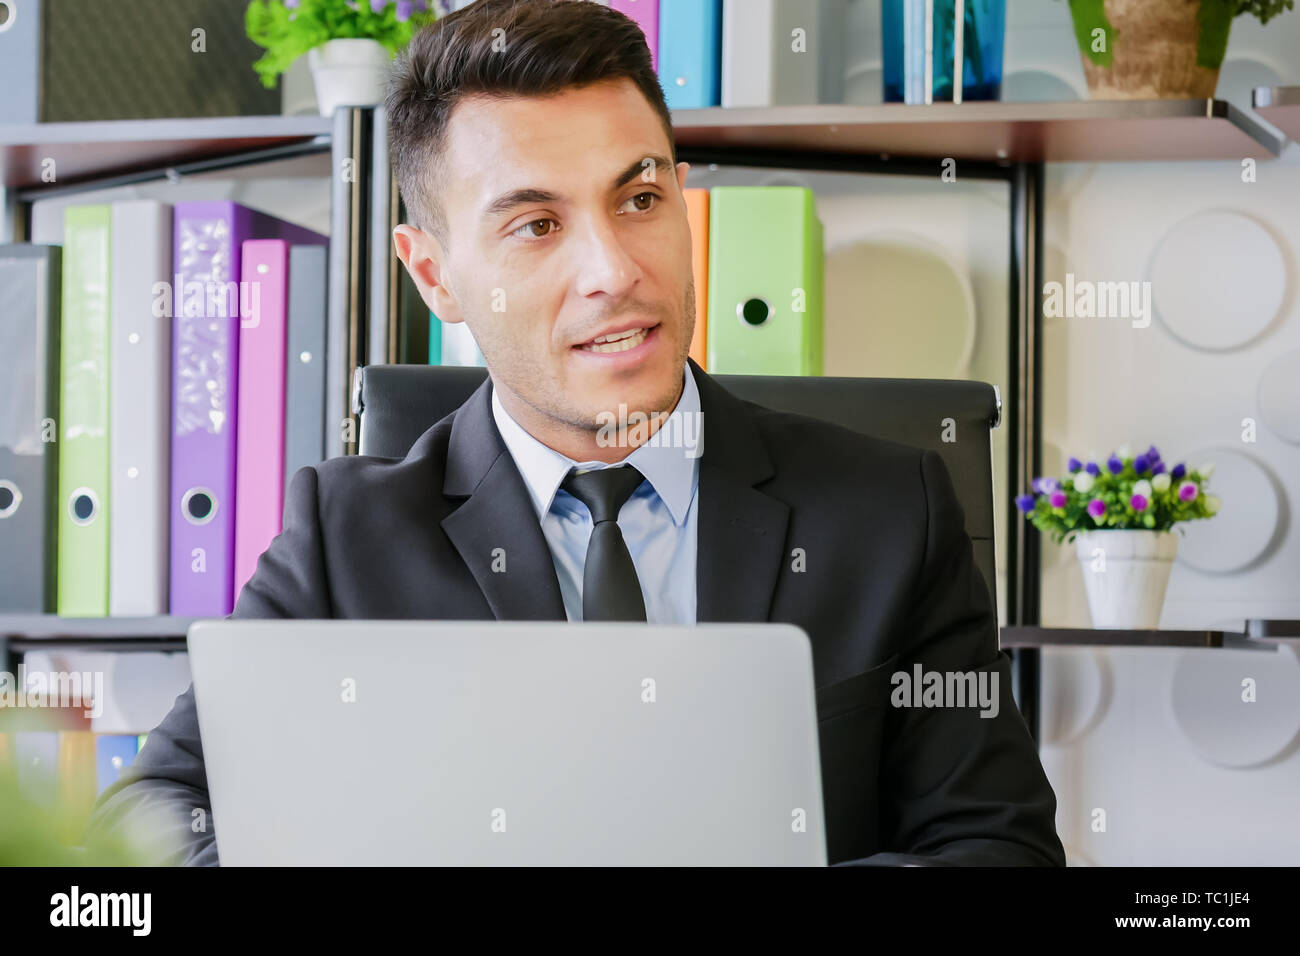 portrait business man work in modern office talking with laptop computer and talking to someone - Stock Image